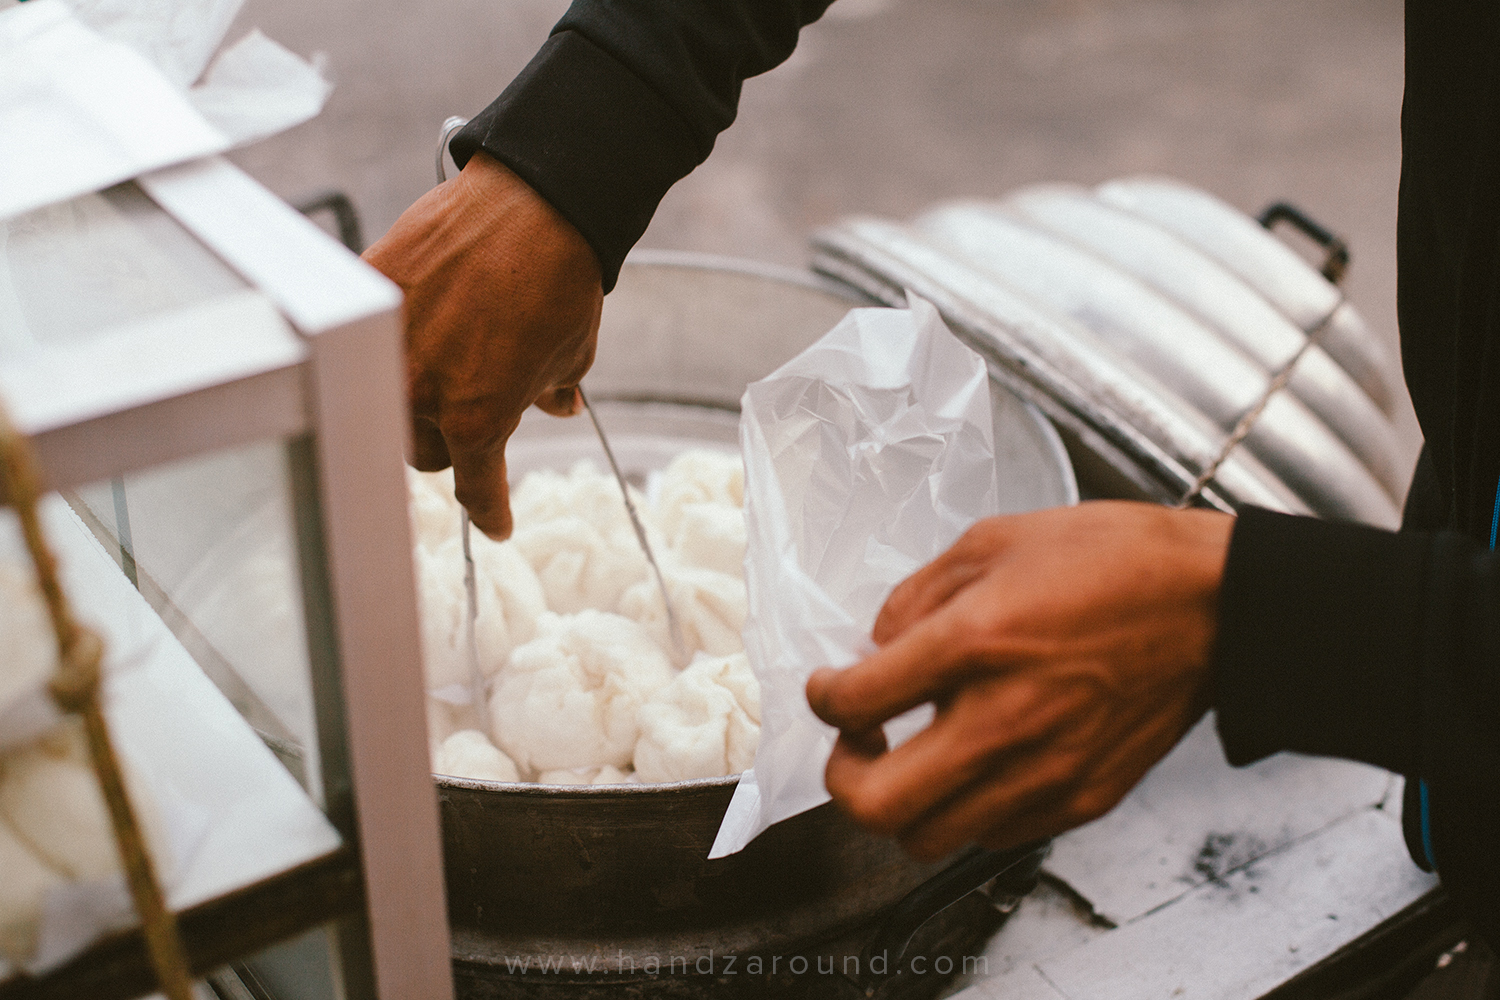 Steam buns from the street vendor